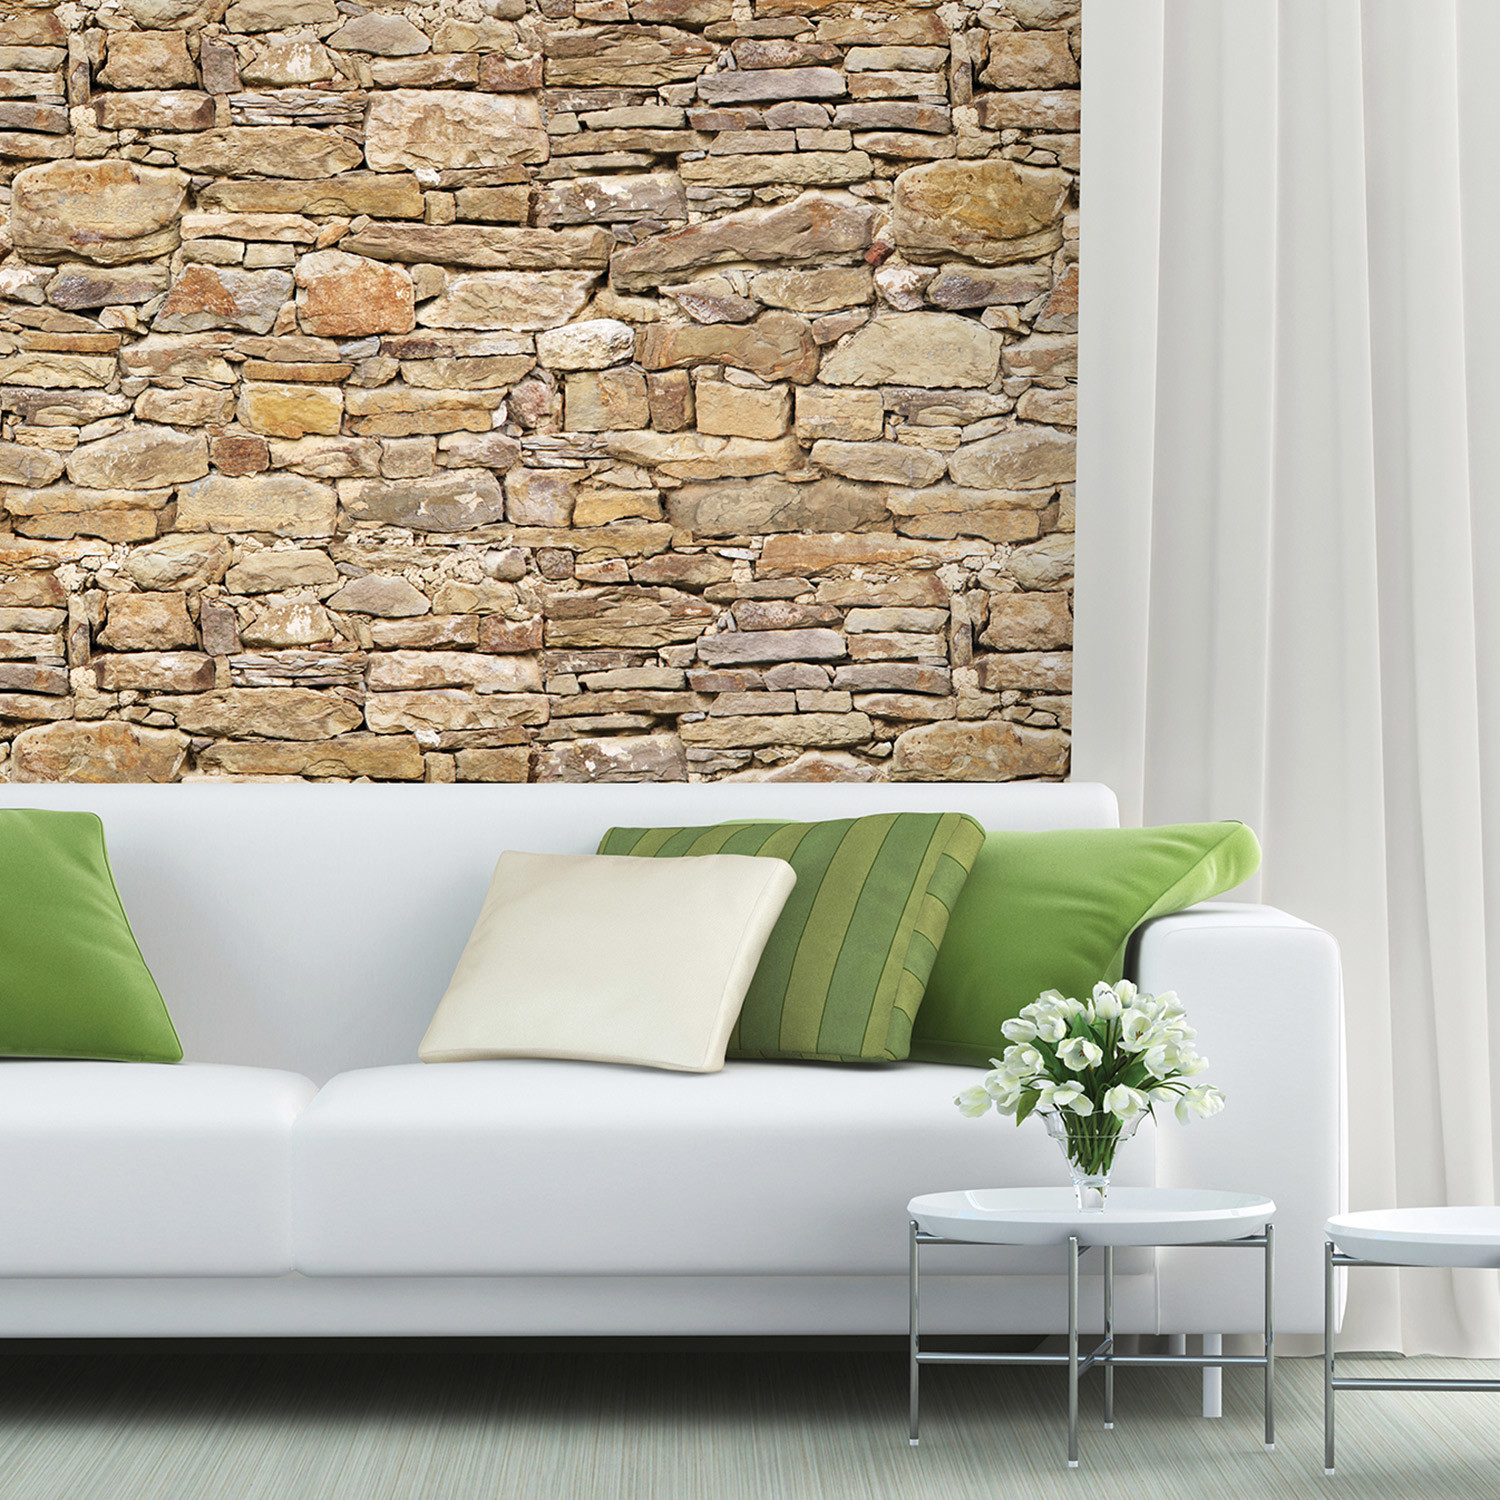 Stone wall mural brewster home fashions touch of modern for Brewster birch wall mural